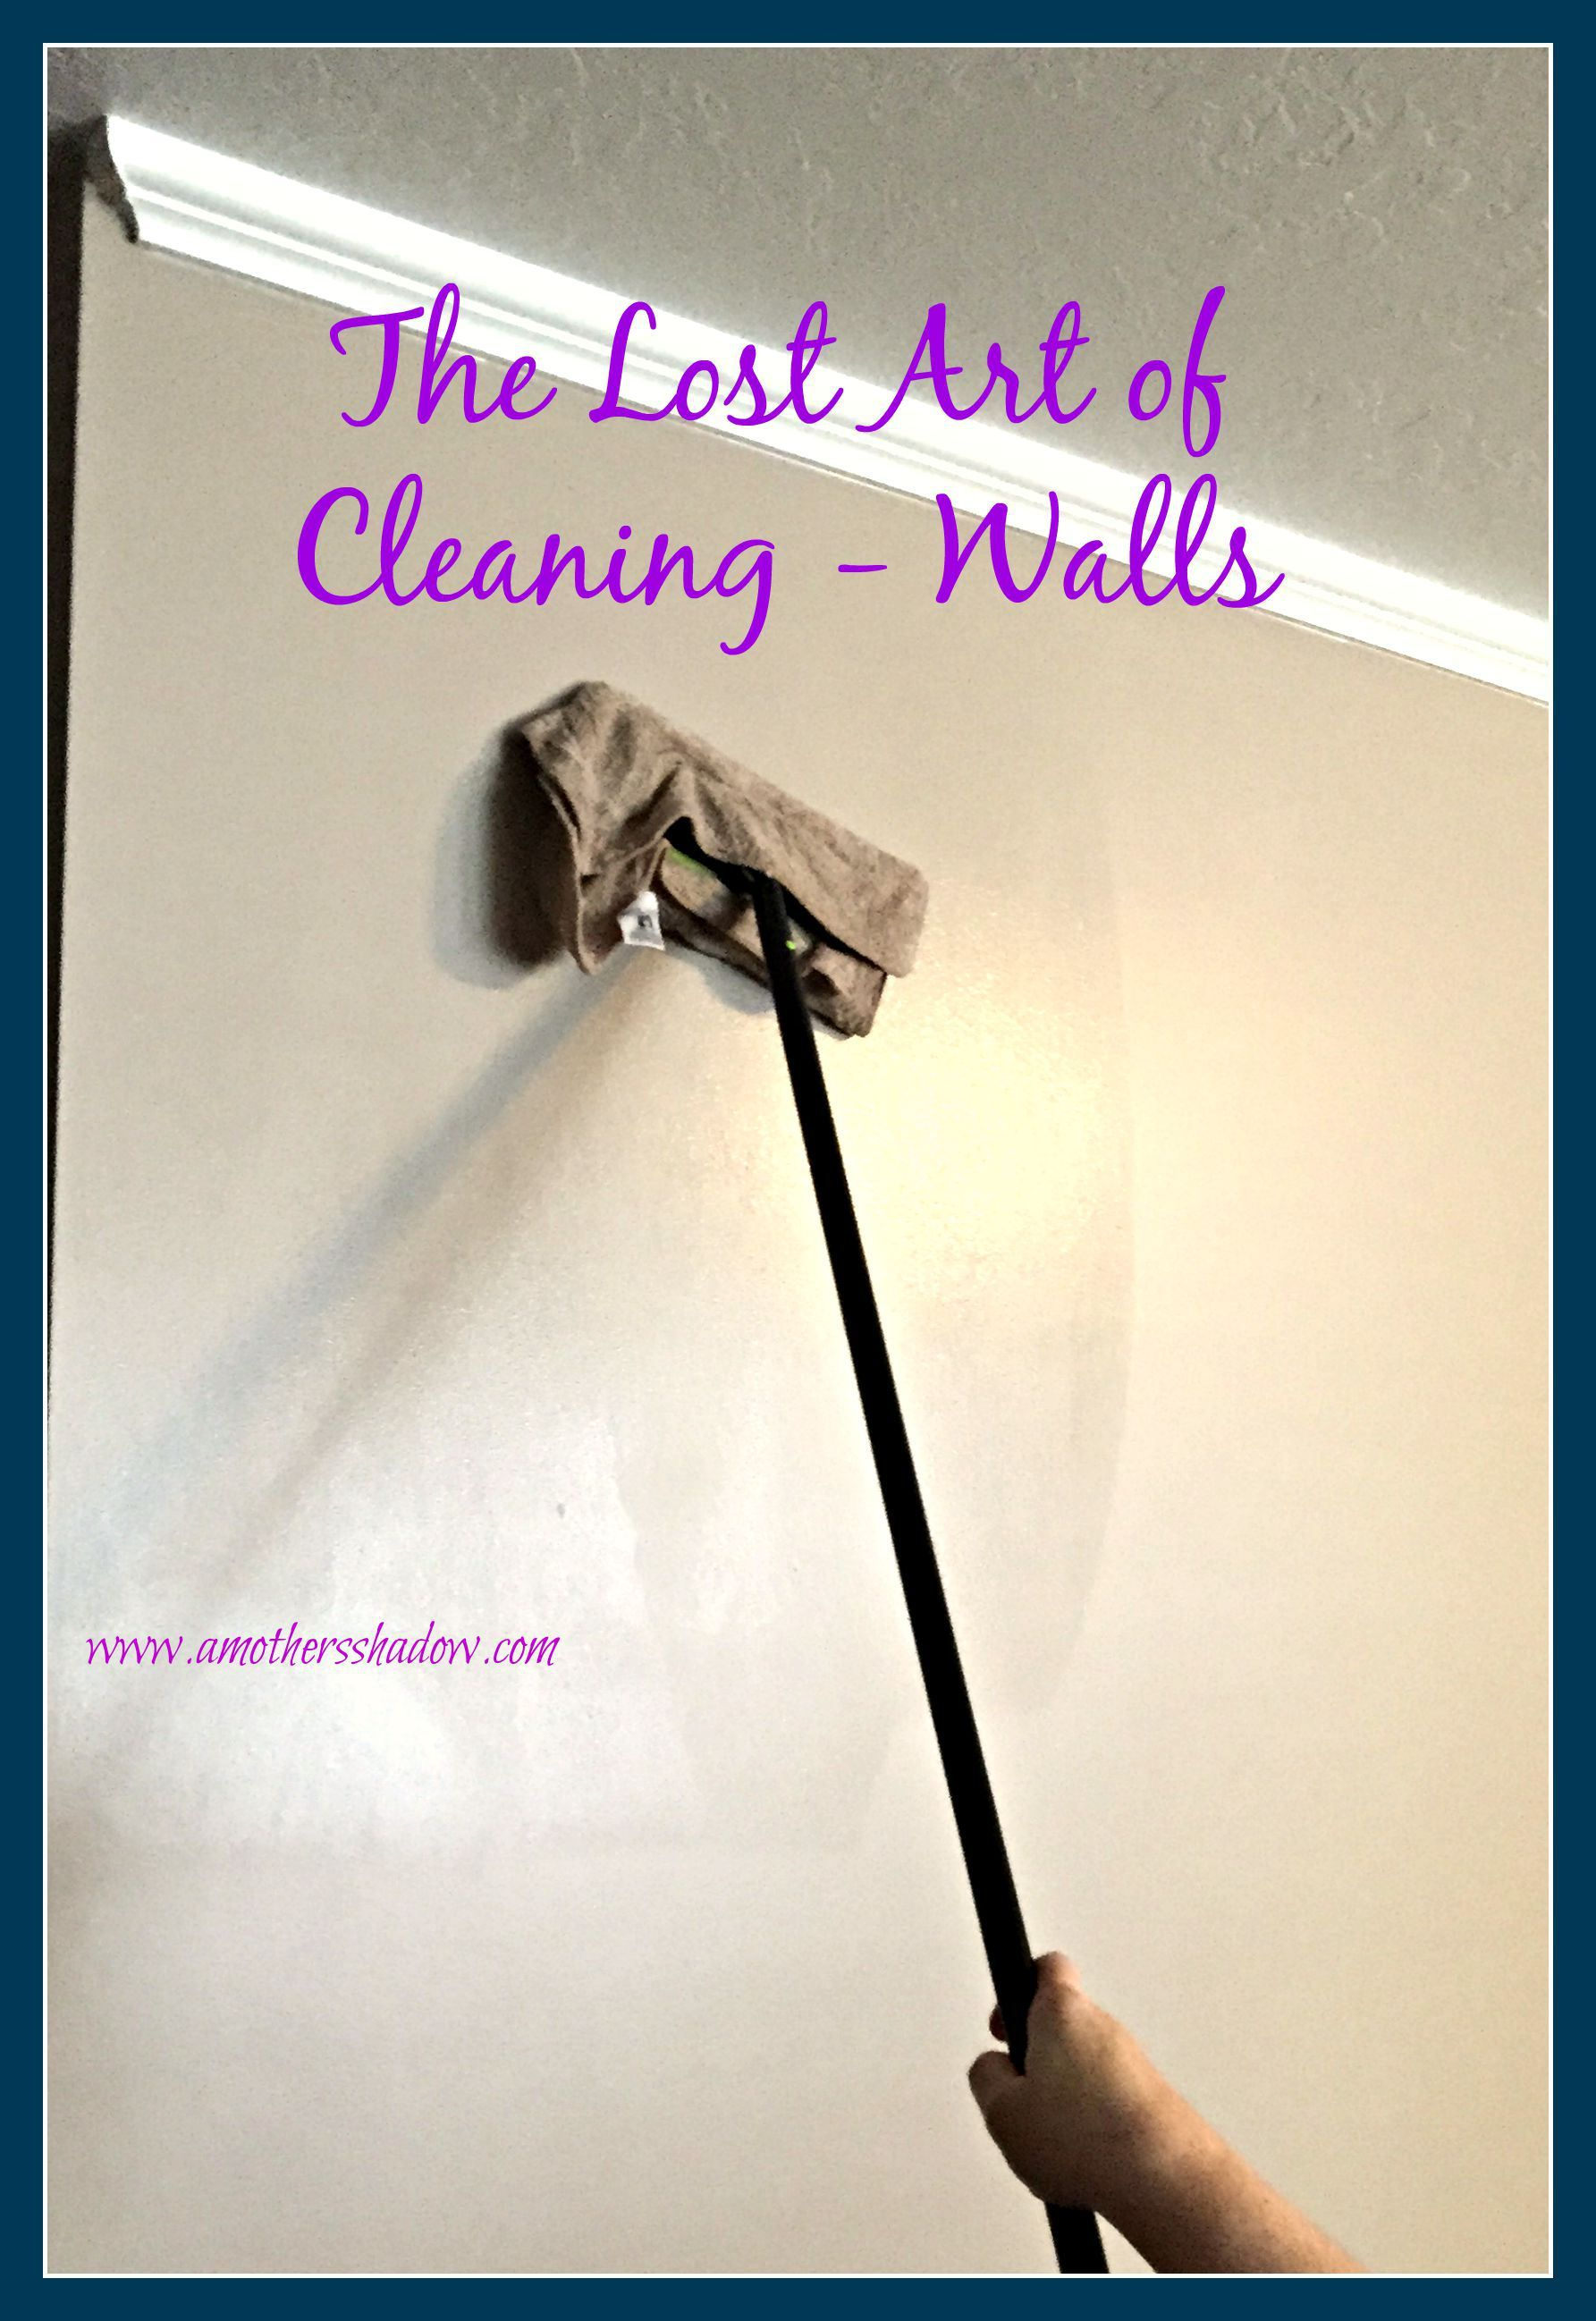 The Lost Art of Cleaning - Walls | Queens, Walls and Household